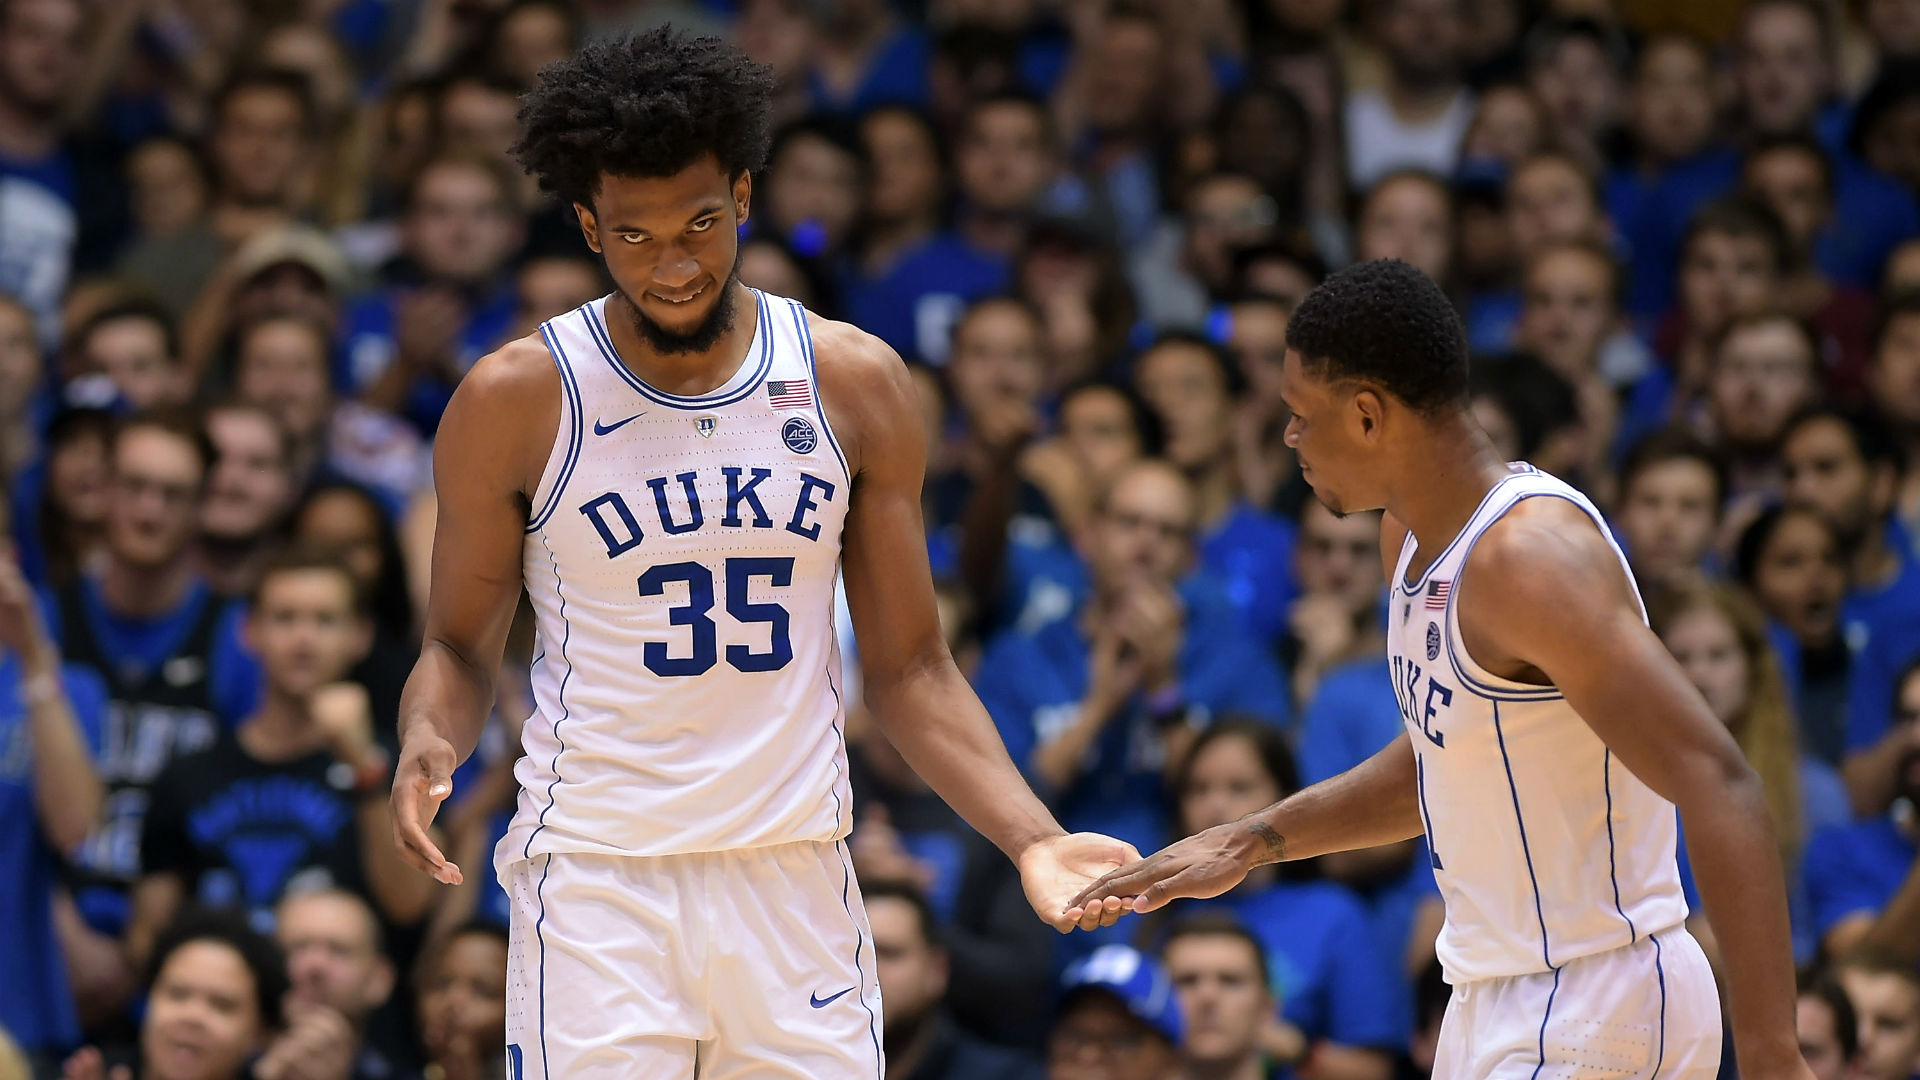 Duke freshman Marvin Bagley III goes down with injury in first half